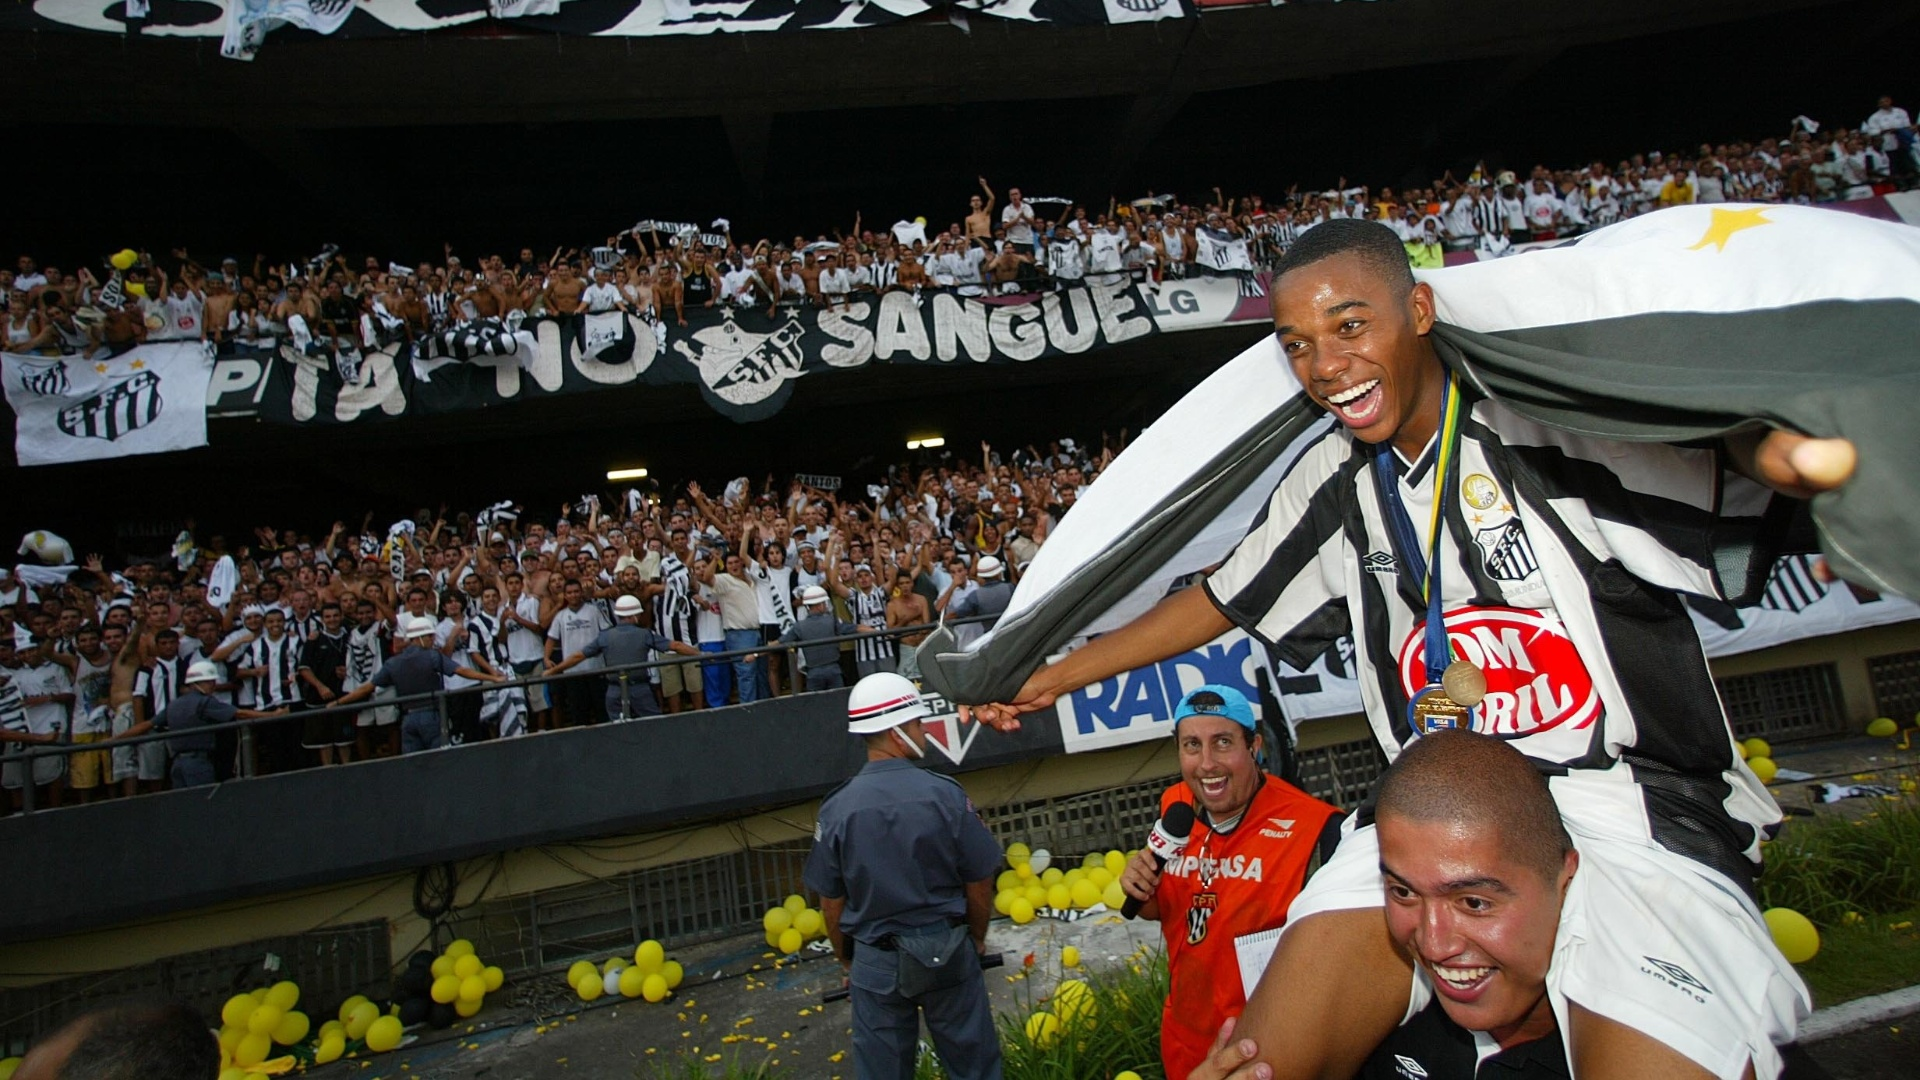 Robinho comemora o ttulo brasileiro de 2002, conquistado pelo Santos